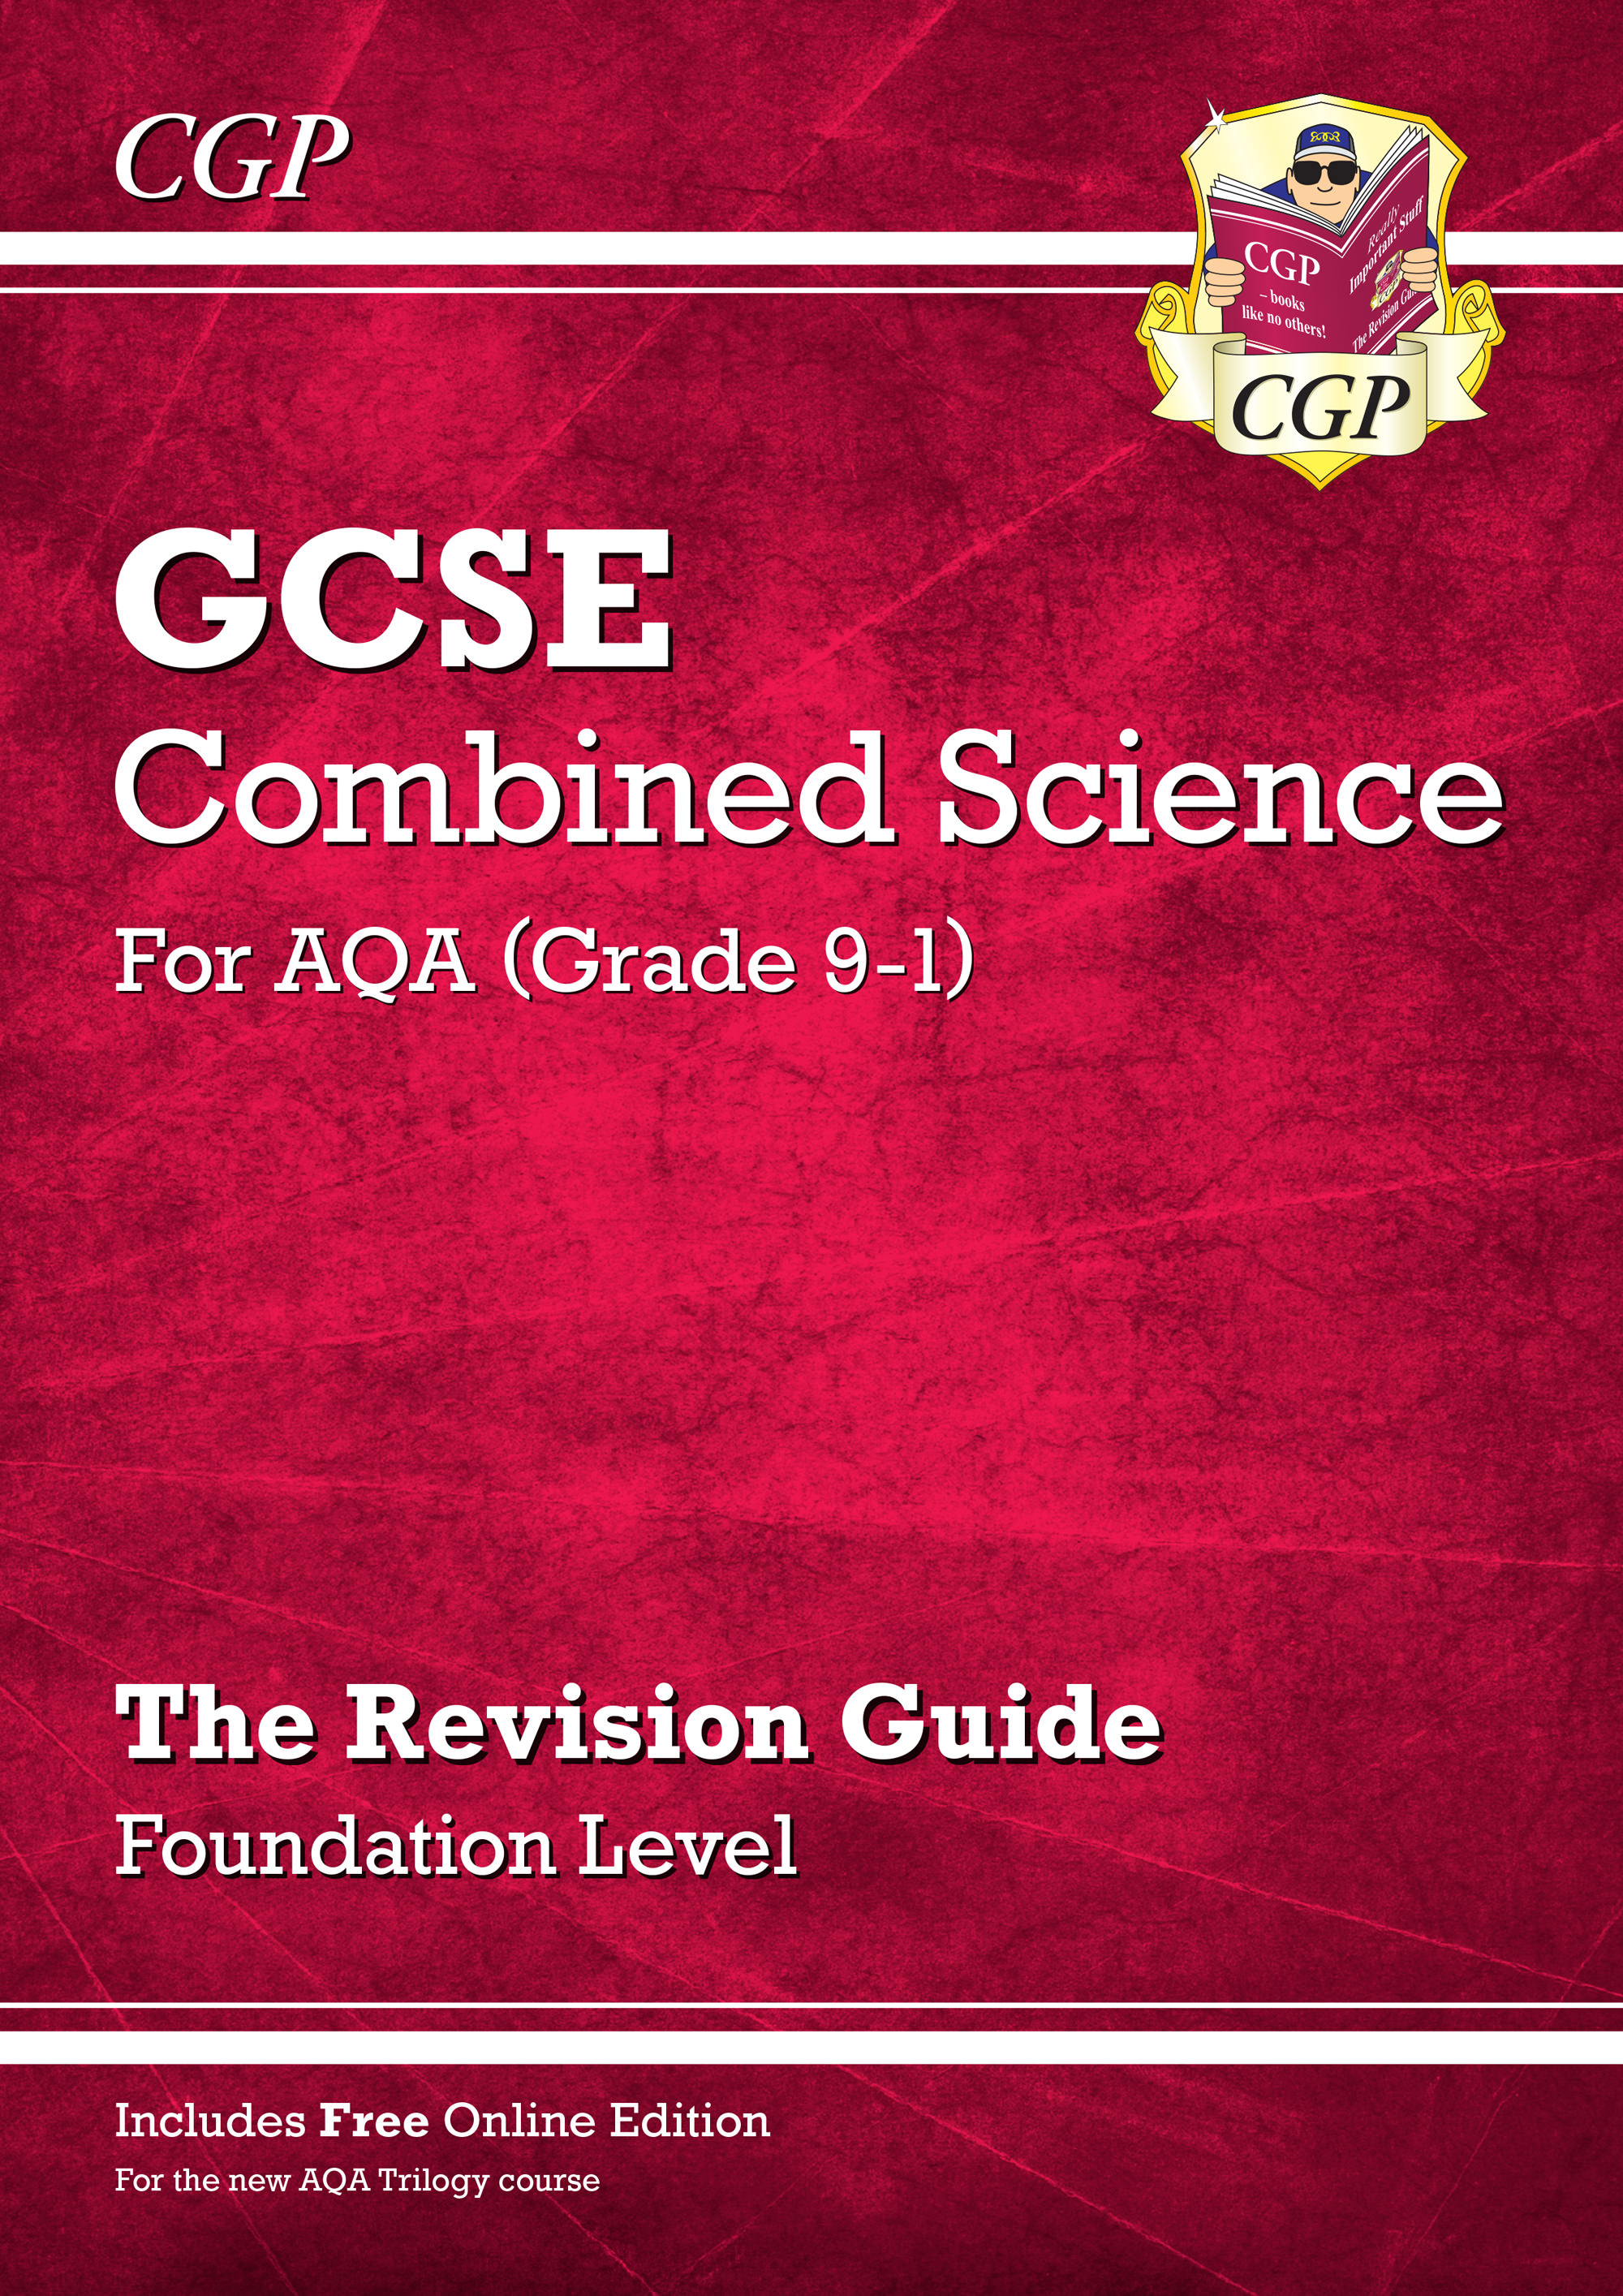 SAFR45 - Grade 9-1 GCSE Combined Science: AQA Revision Guide with Online Edition - Foundation